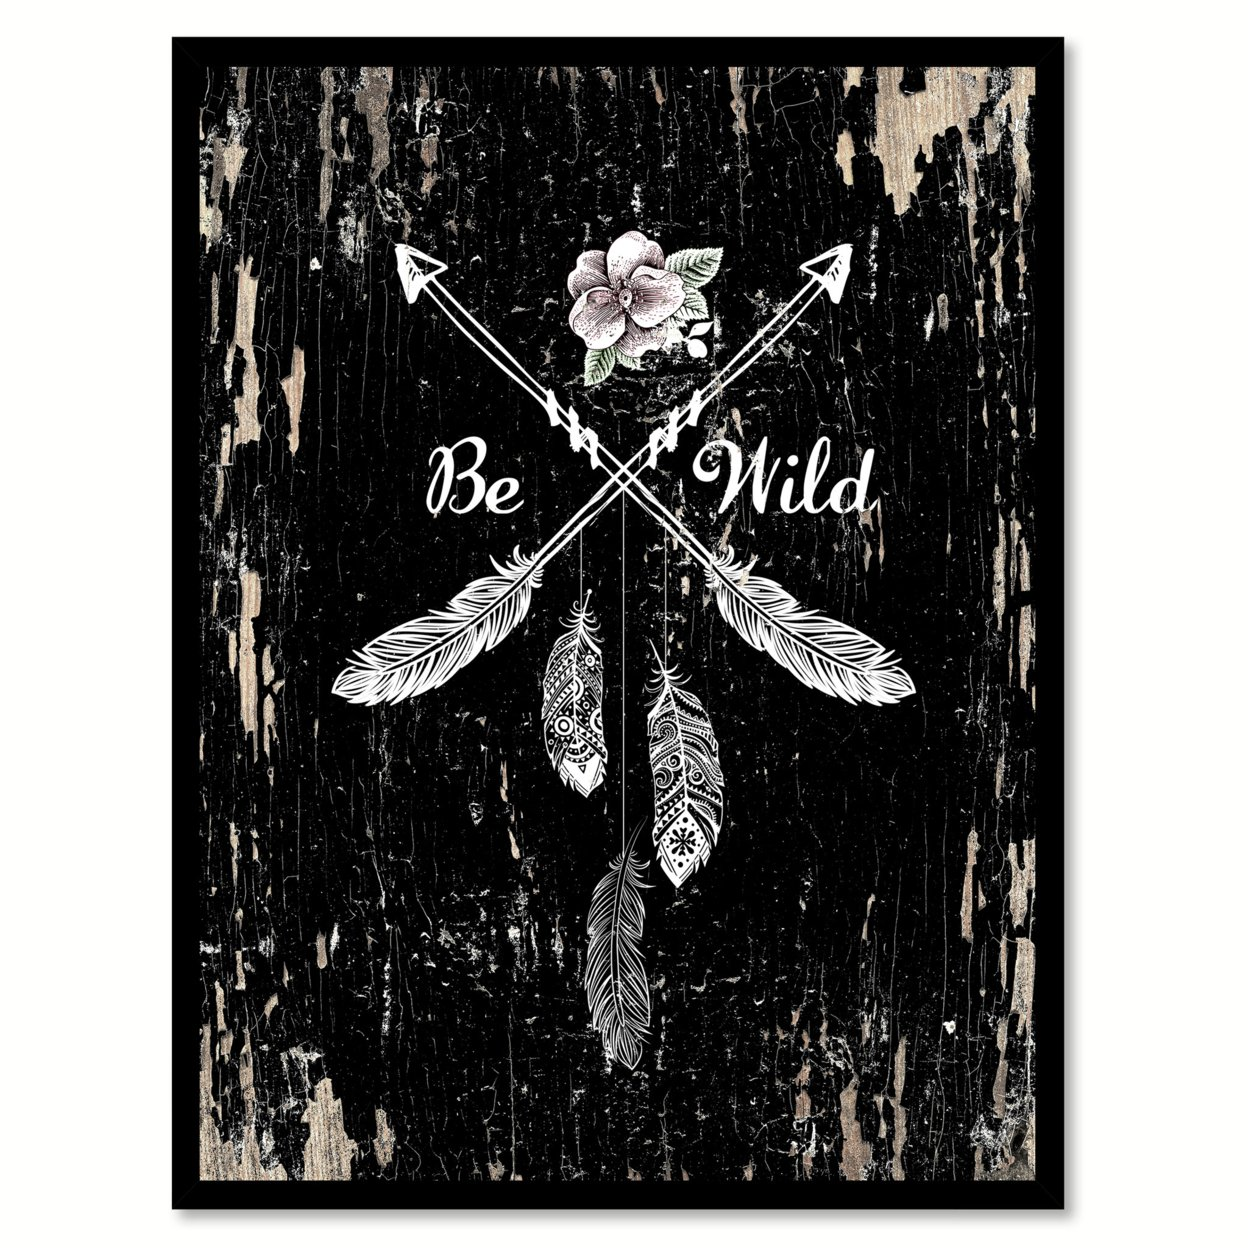 Be Wild Saying Canvas Print With Picture Frame Home Decor Wall Art Gifts